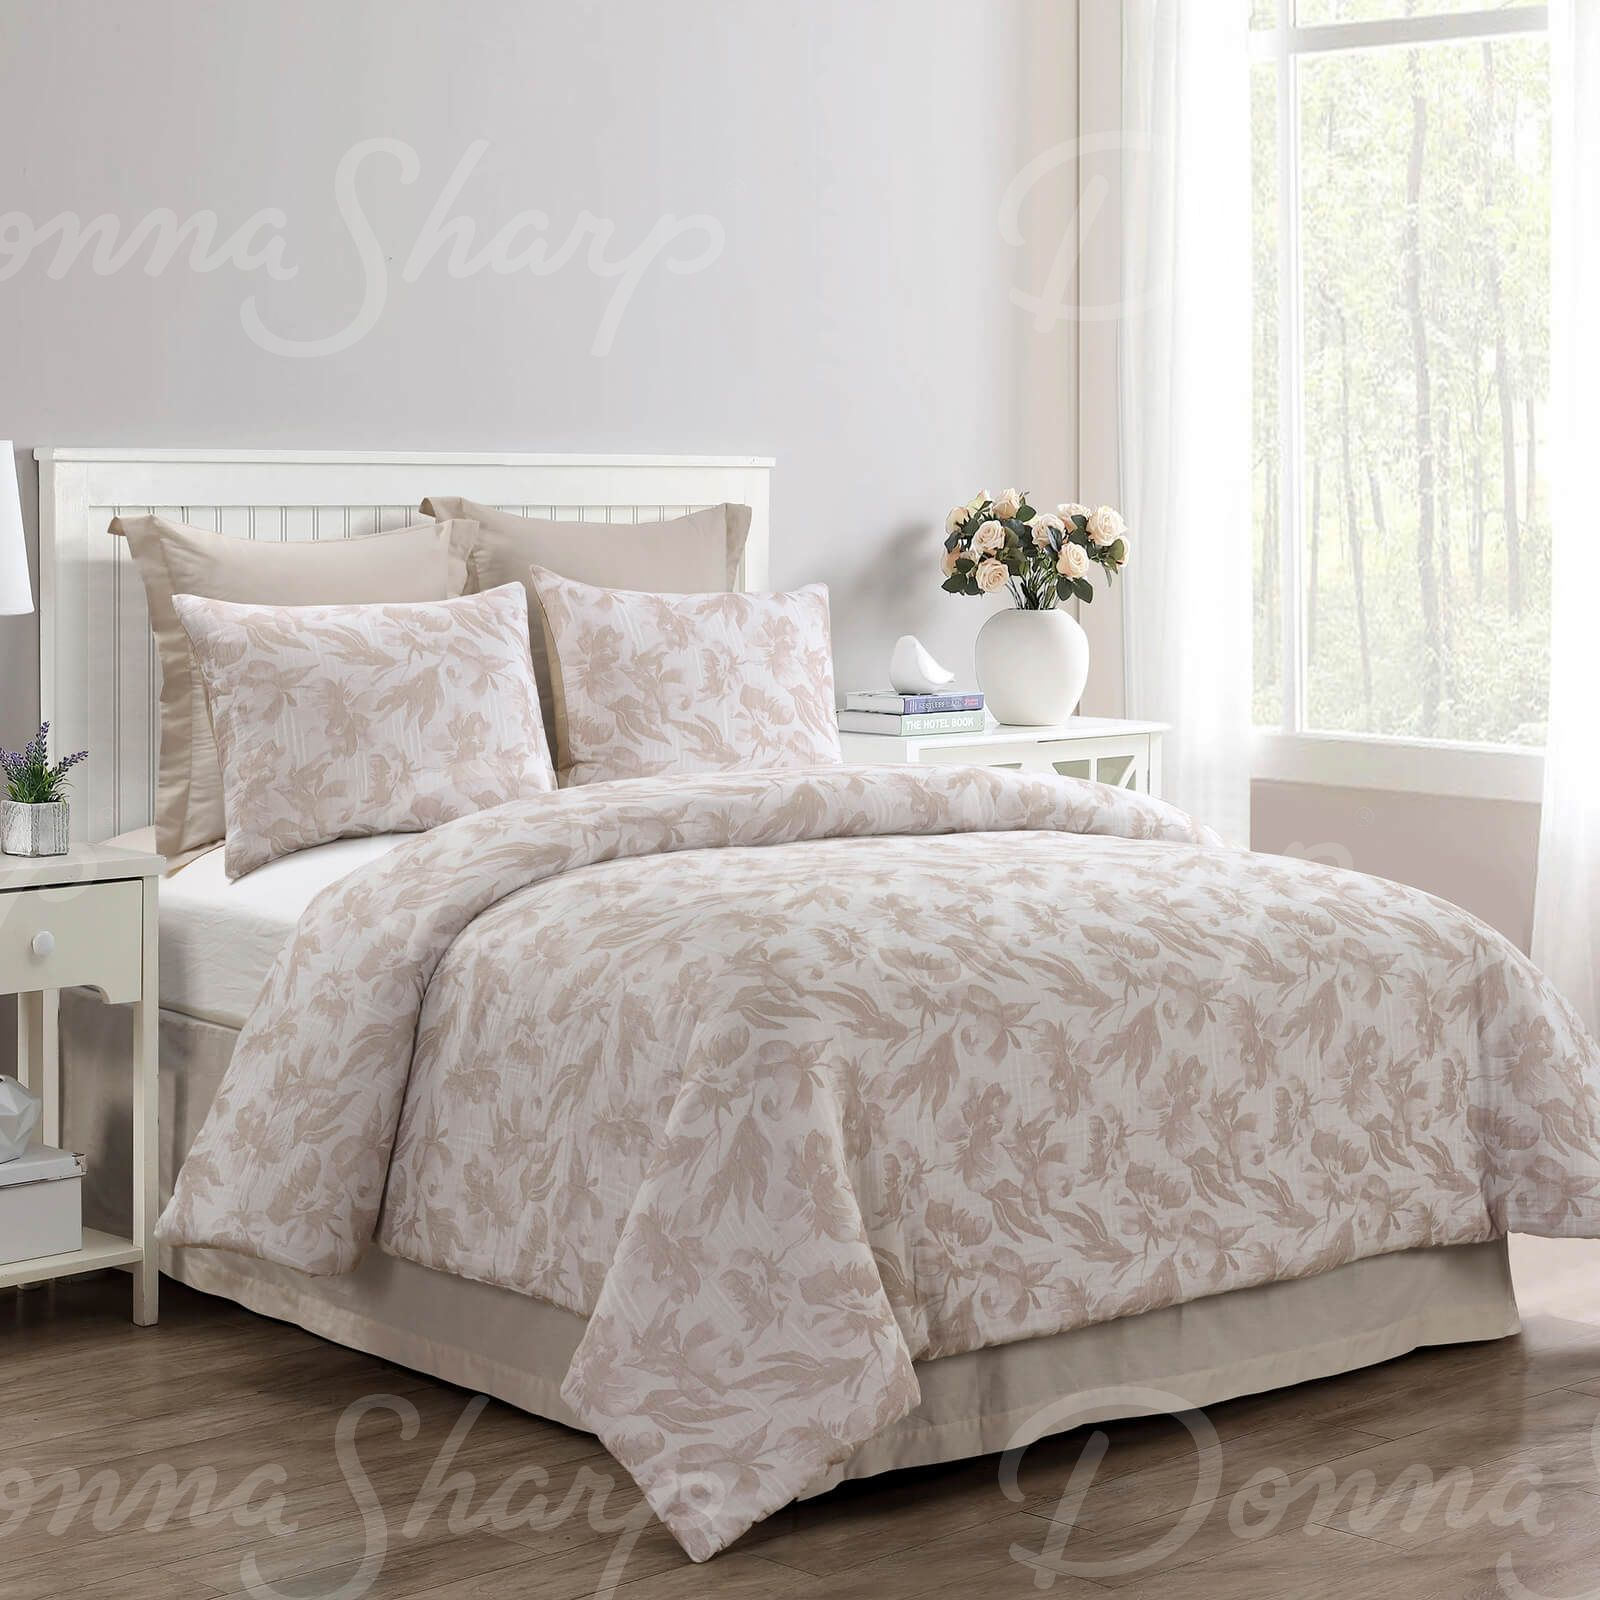 King Comforter Set Almaria Blush